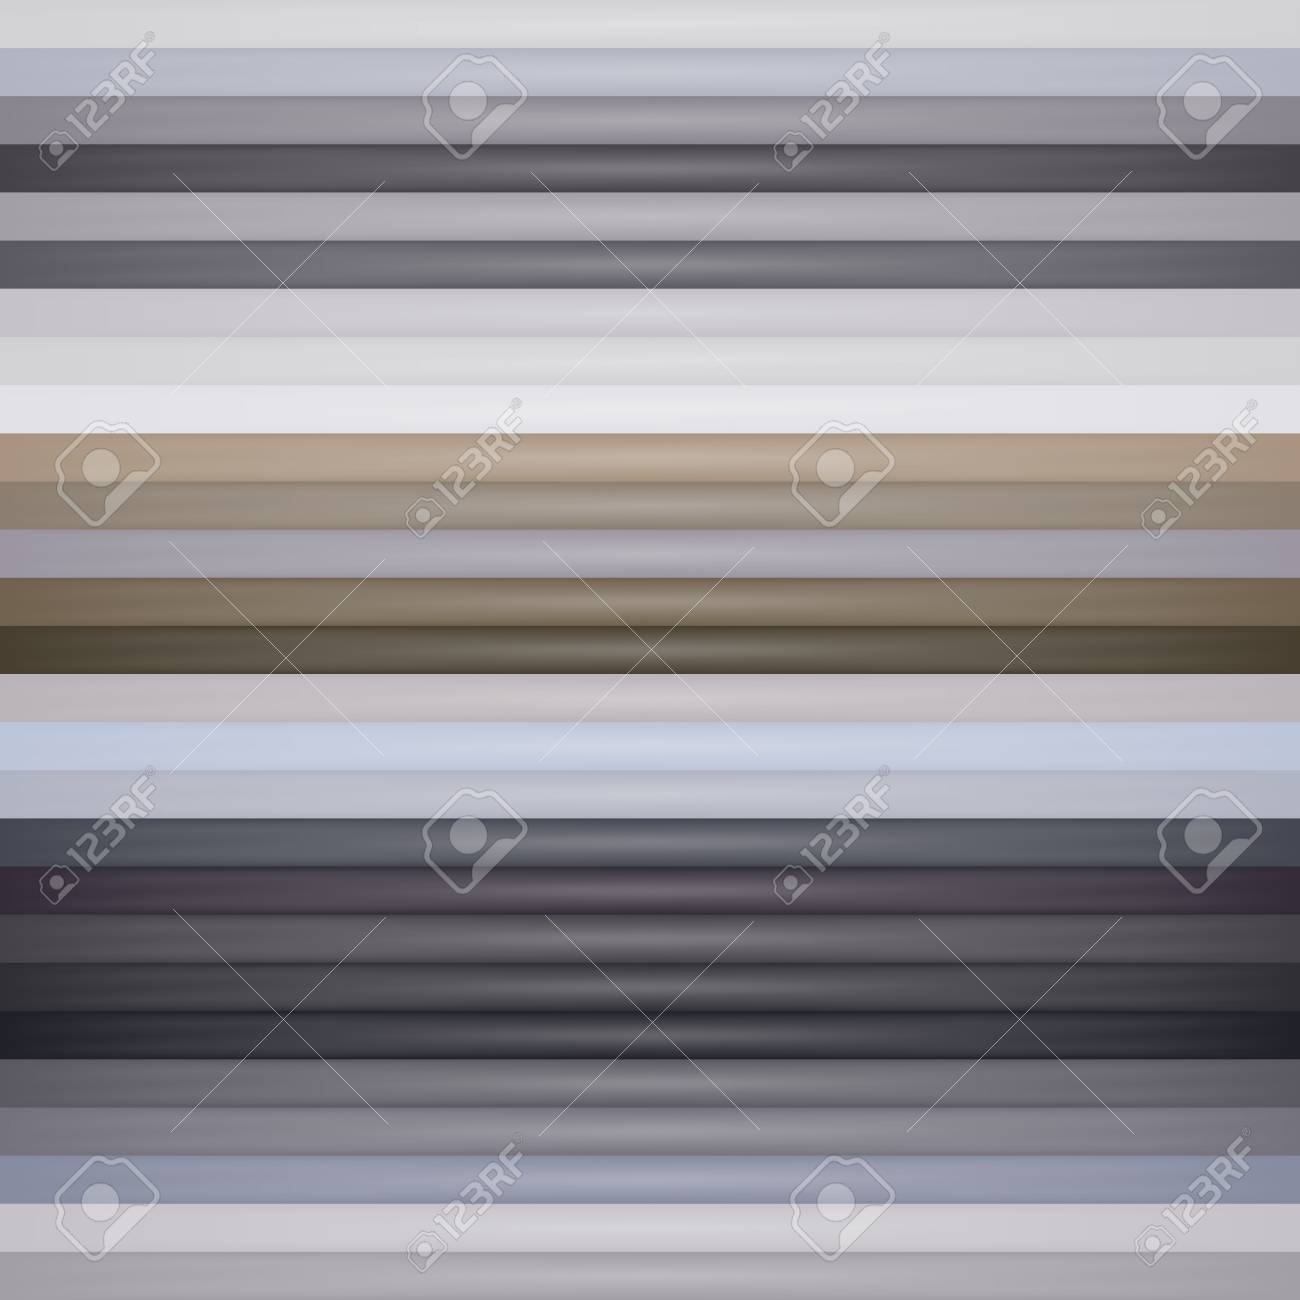 Abstract Retro Vector Striped Background, Pattern of Multicolored Horizontal Stripes Stock Vector - 22800661